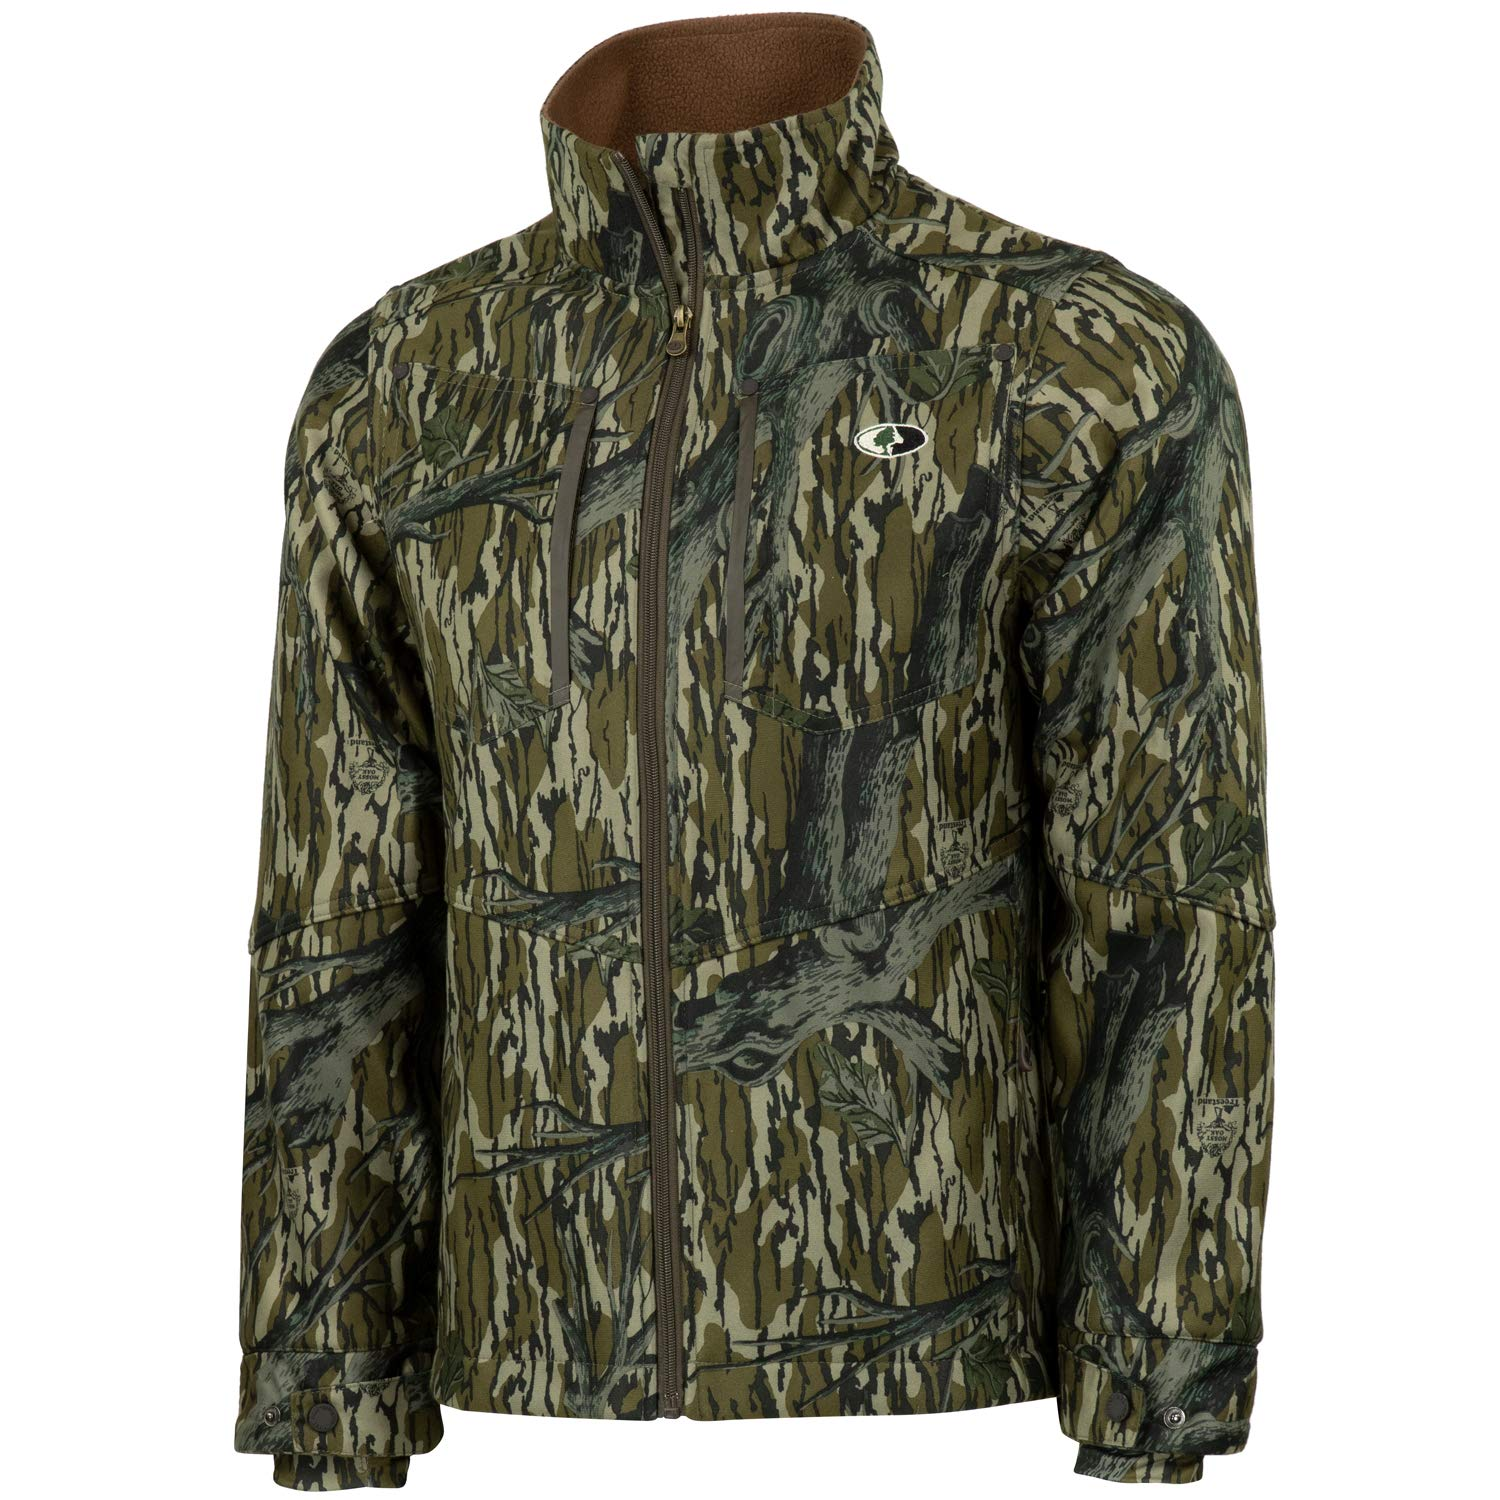 Mossy Oak Men's Camo Sherpa 2.0 Fleece Lined Hunting Jacket, Original Treestand, X-Large by Mossy Oak